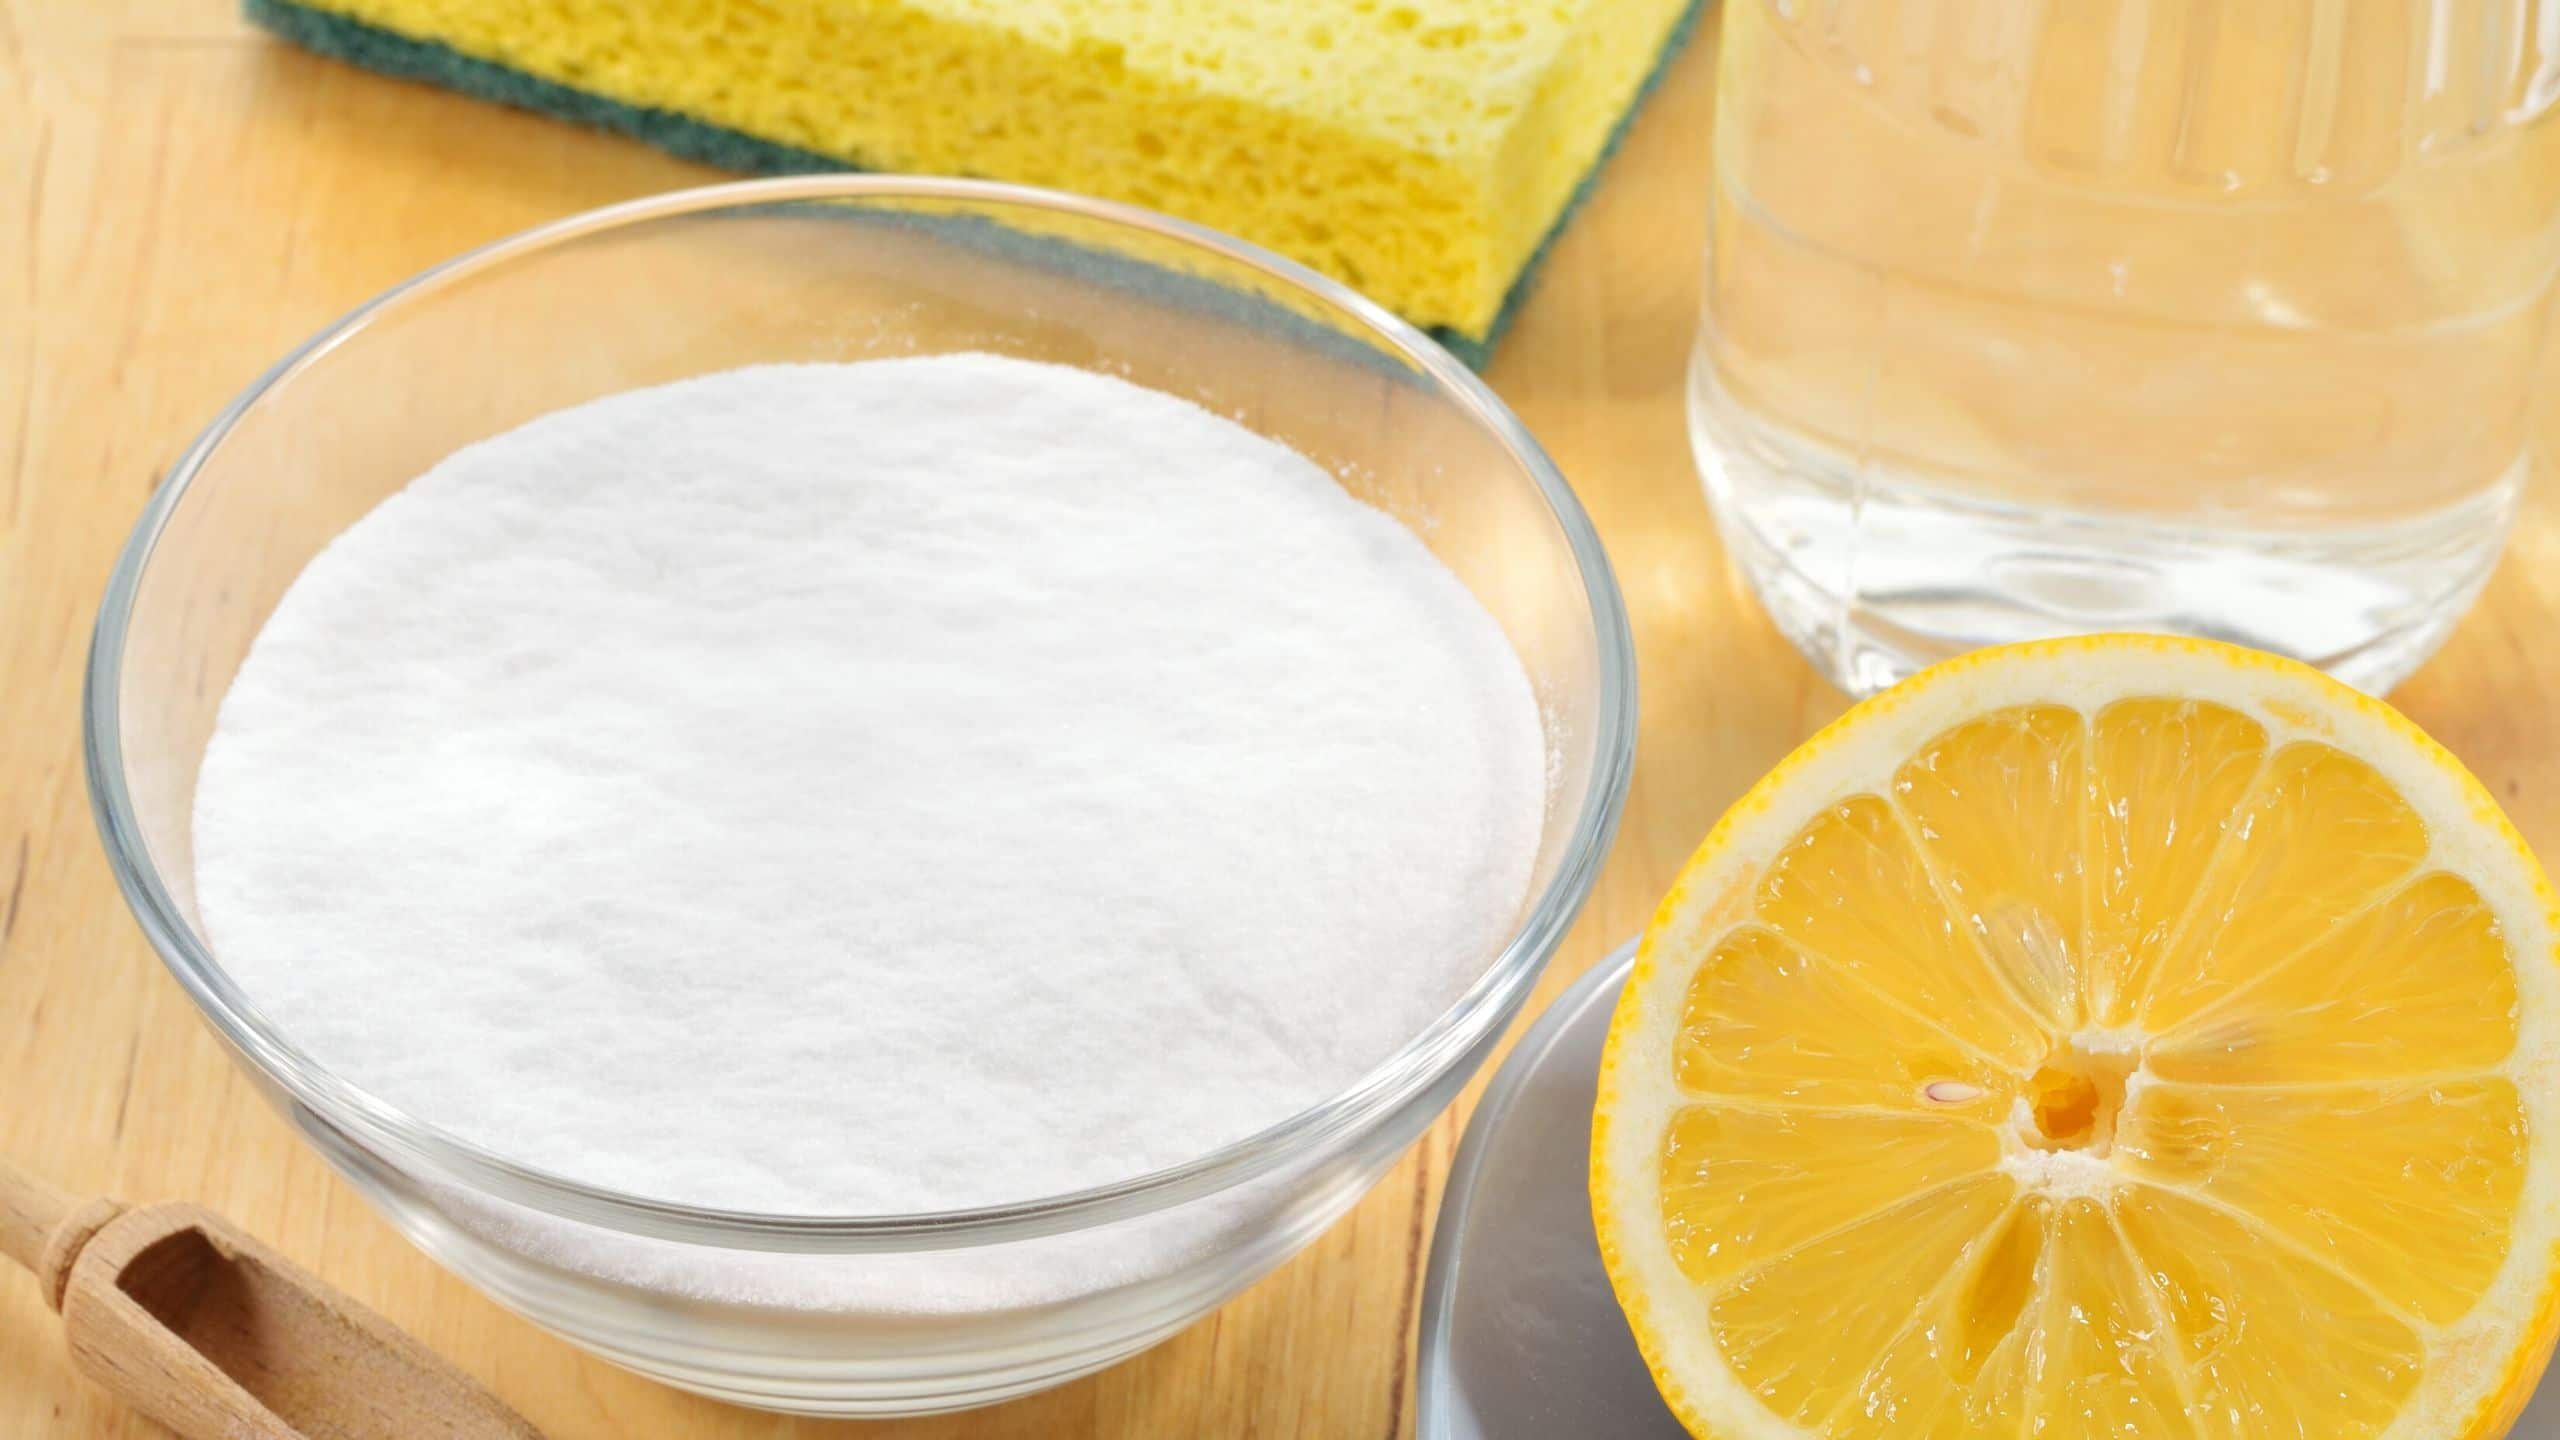 Lemon and Baking Soda For Health, Skin, and Hair